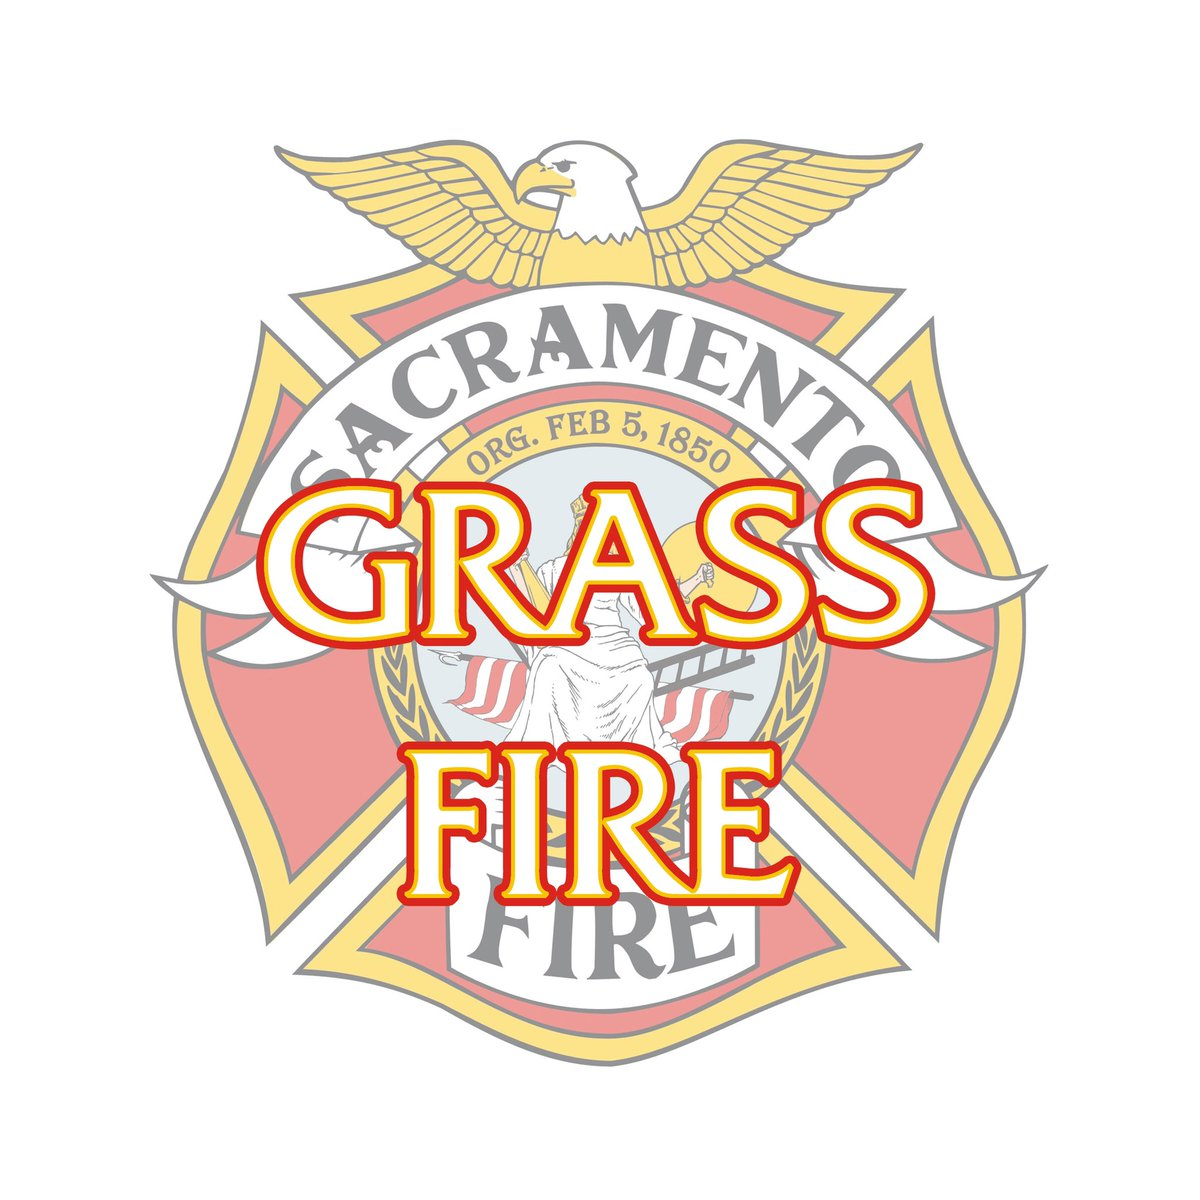 Incident info: Fast moving grass fire near W. Elverta Rd & Power Line Rd. I'm North Sacramento. Traffic advisory for both roads. Avoid the area if at all possible. https://t.co/TLg18JFJyR